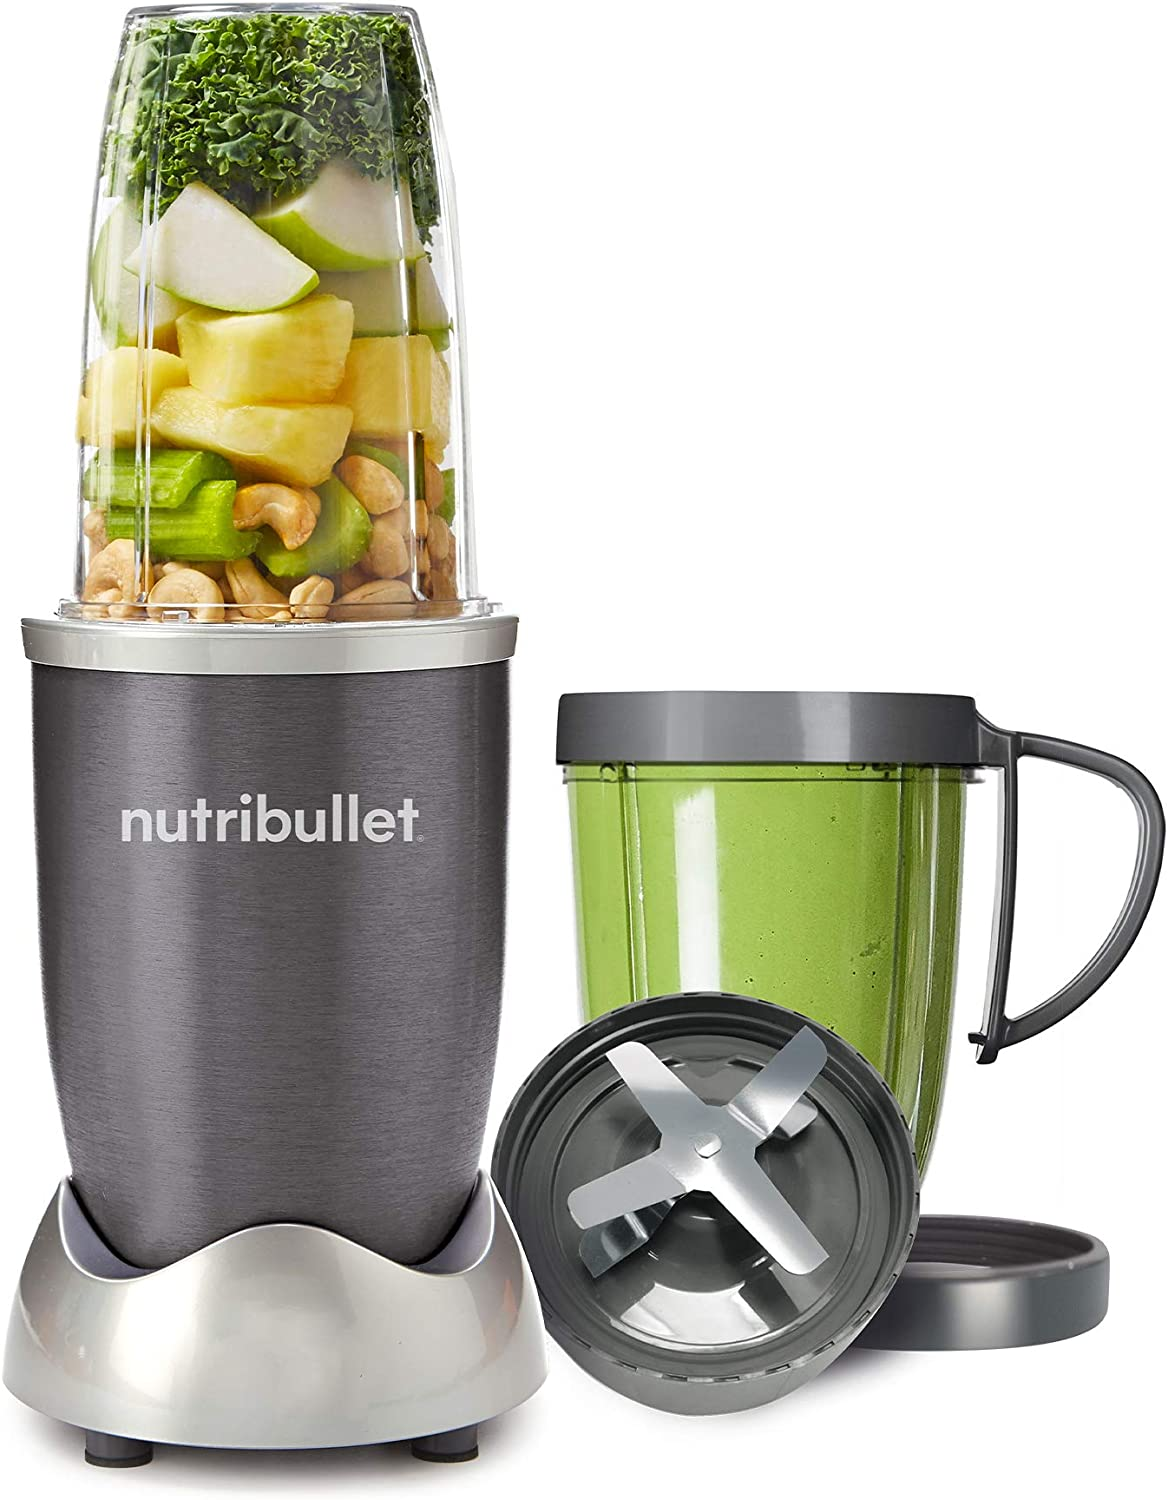 Blender /& Mixer System 8-Piece Set NutriBullet 600 Superfood Nutrition Extractor